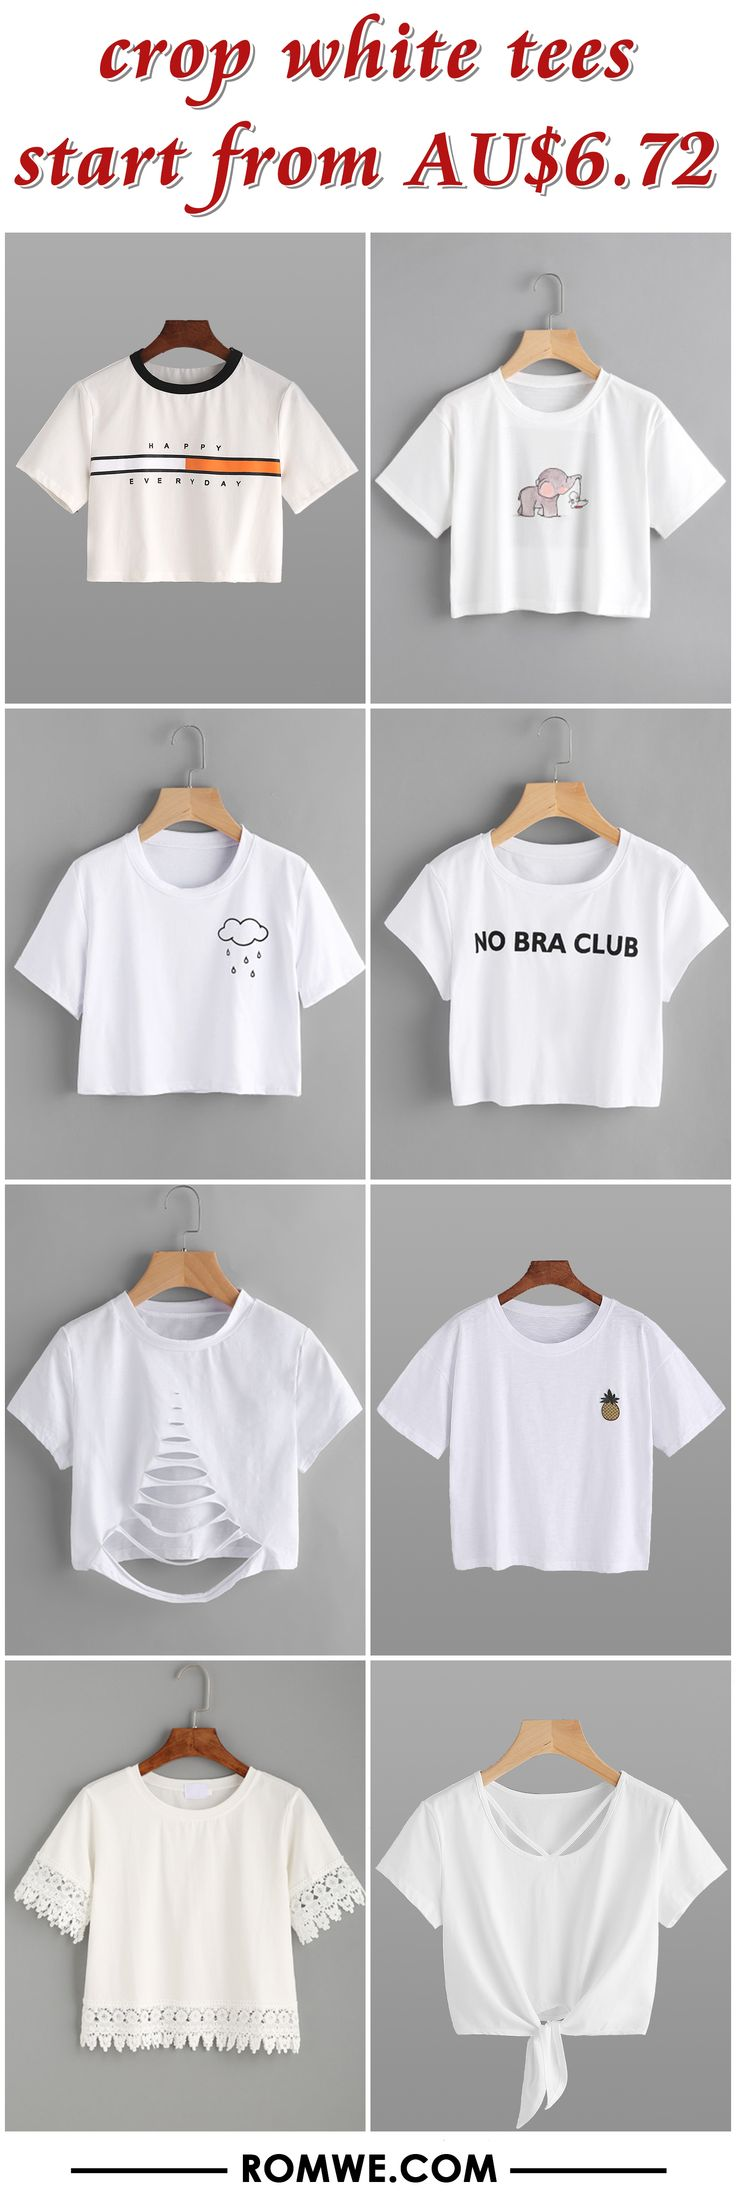 crop white tees 2017 - romwe.com